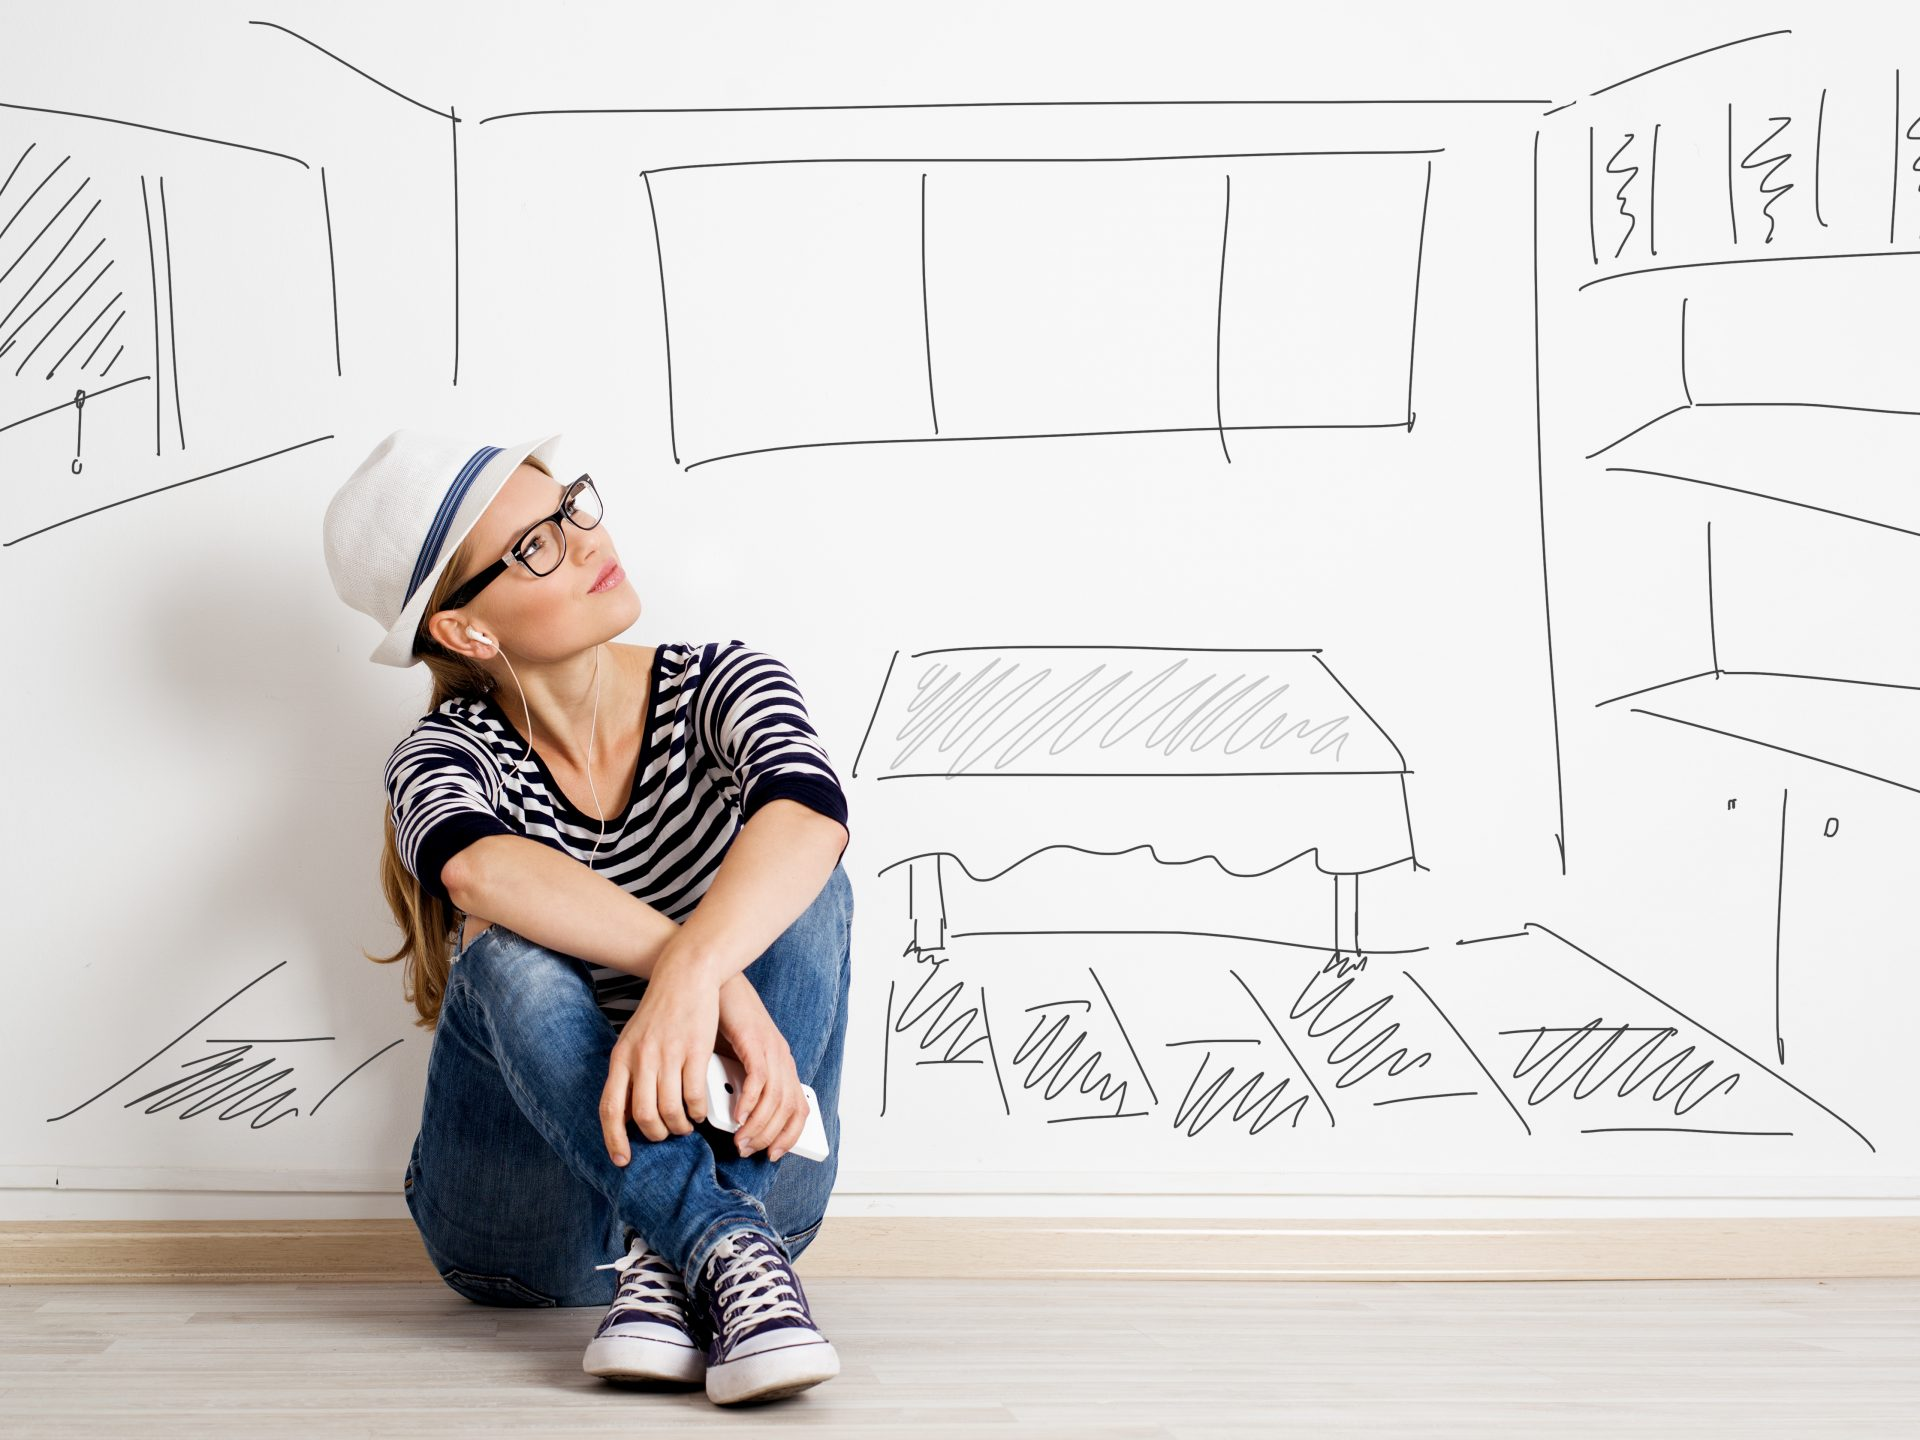 Millennial home buyer looking at wall